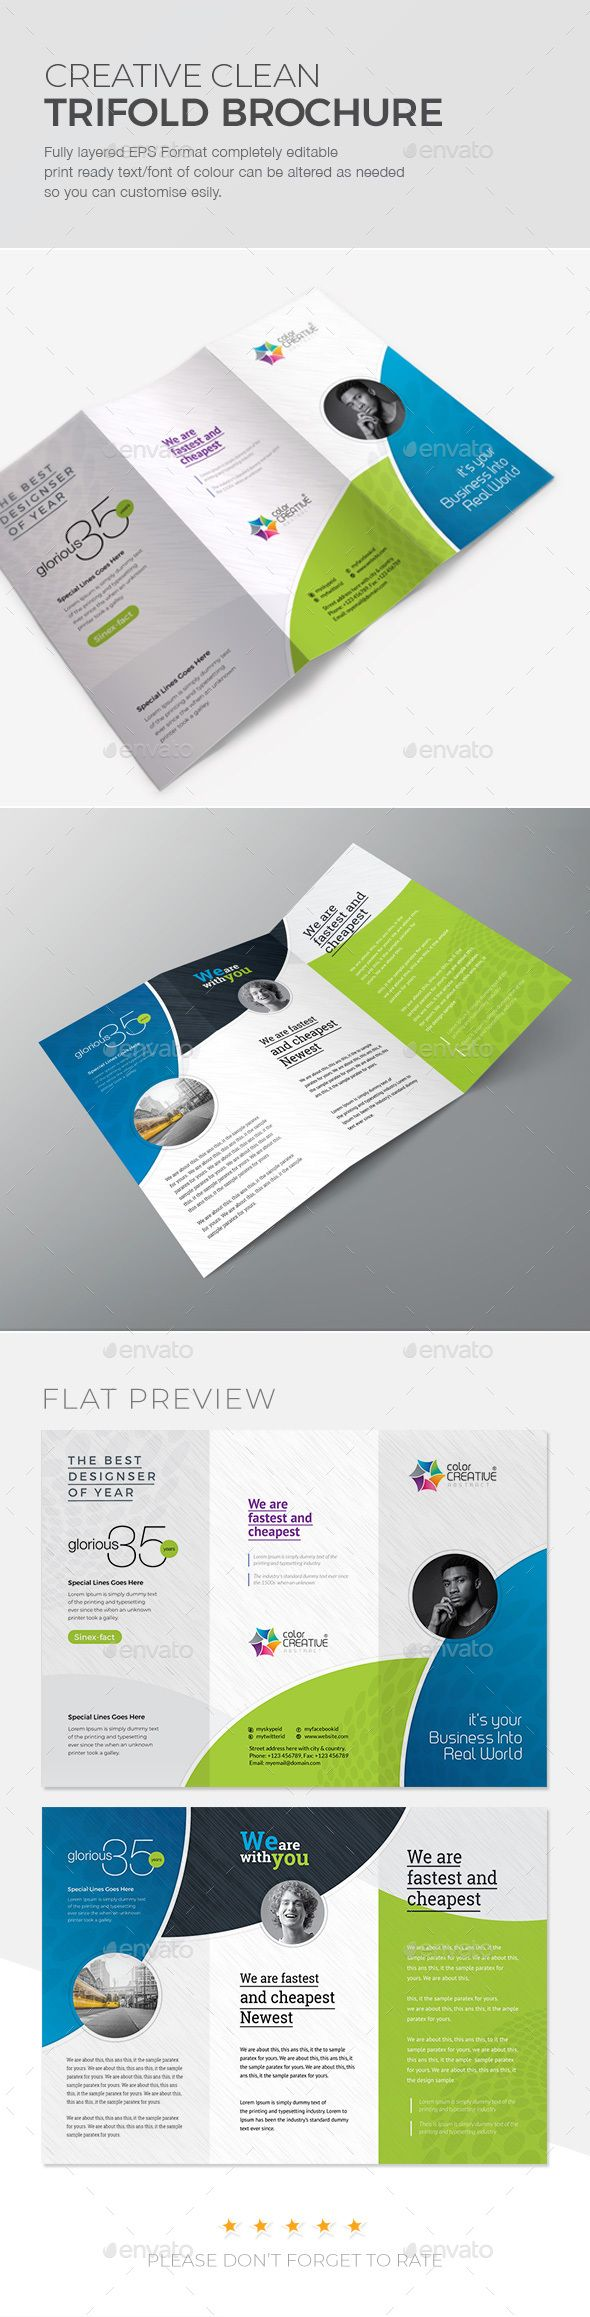 Clean Tri Fold Brochureclean Trifold Brochure Template Design Is Very Easy To Use And Chang Brochure Design Template Corporate Brochure Design Trifold Brochure Template for tri fold brochure